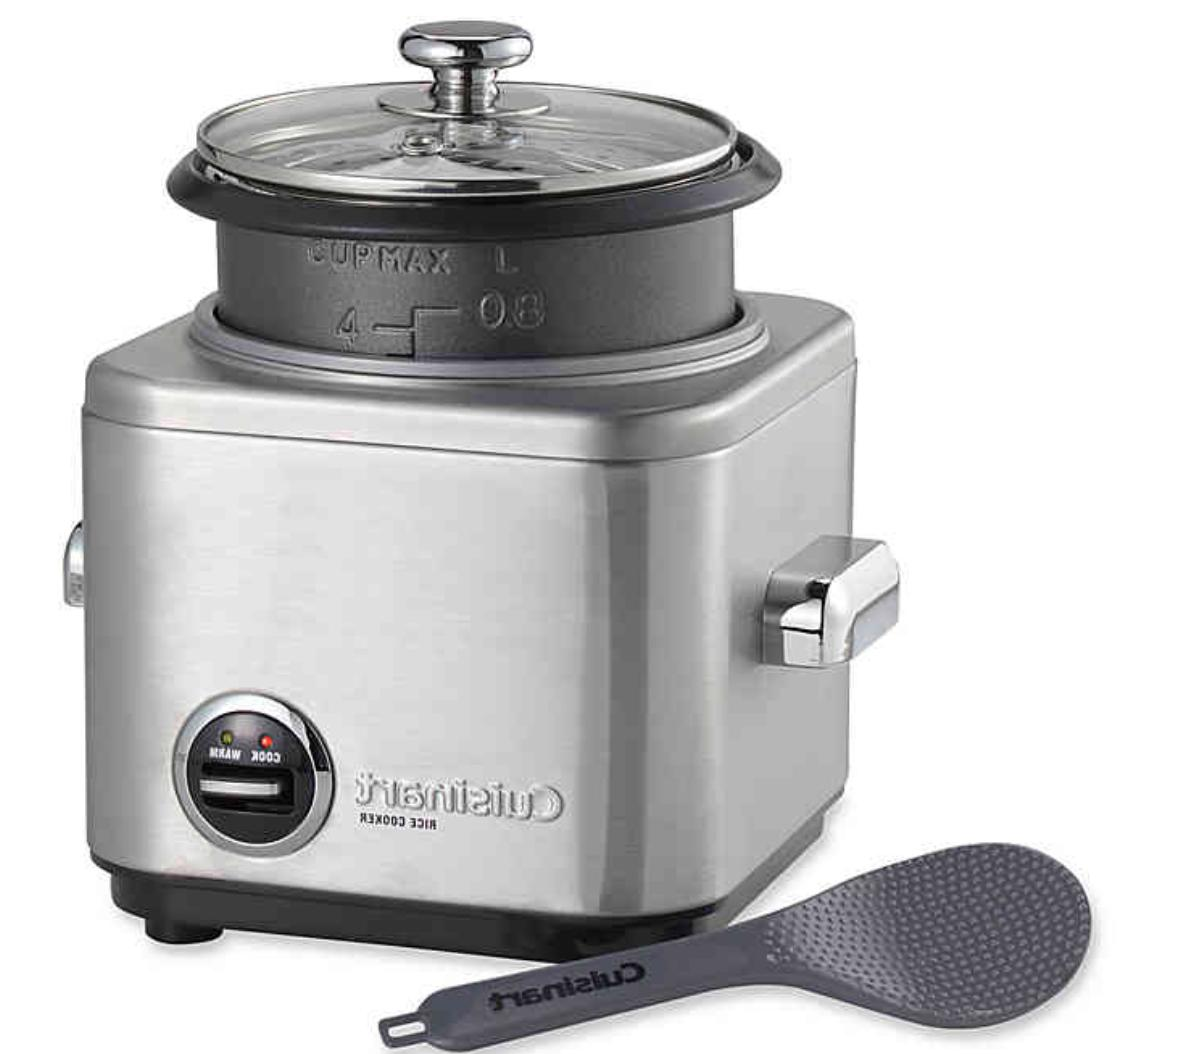 new 4 cup stainless steel rice cooker